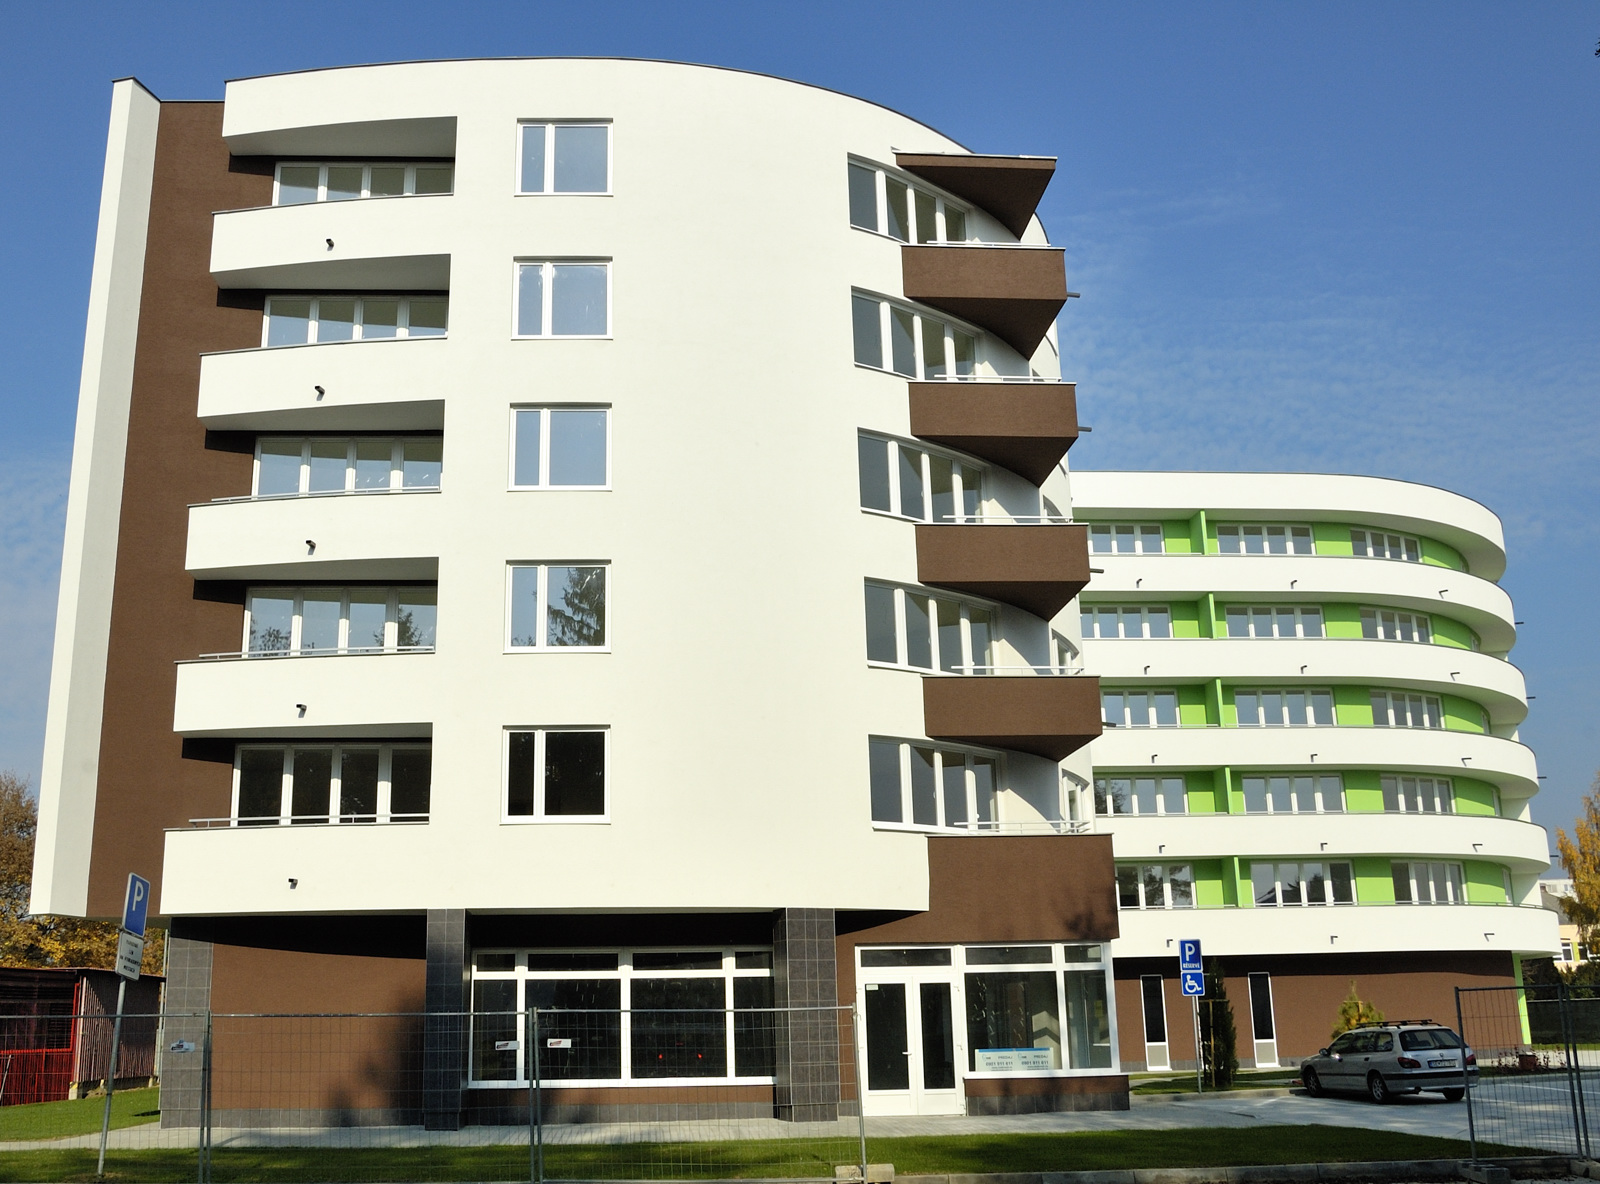 File:New Apartments In Senica